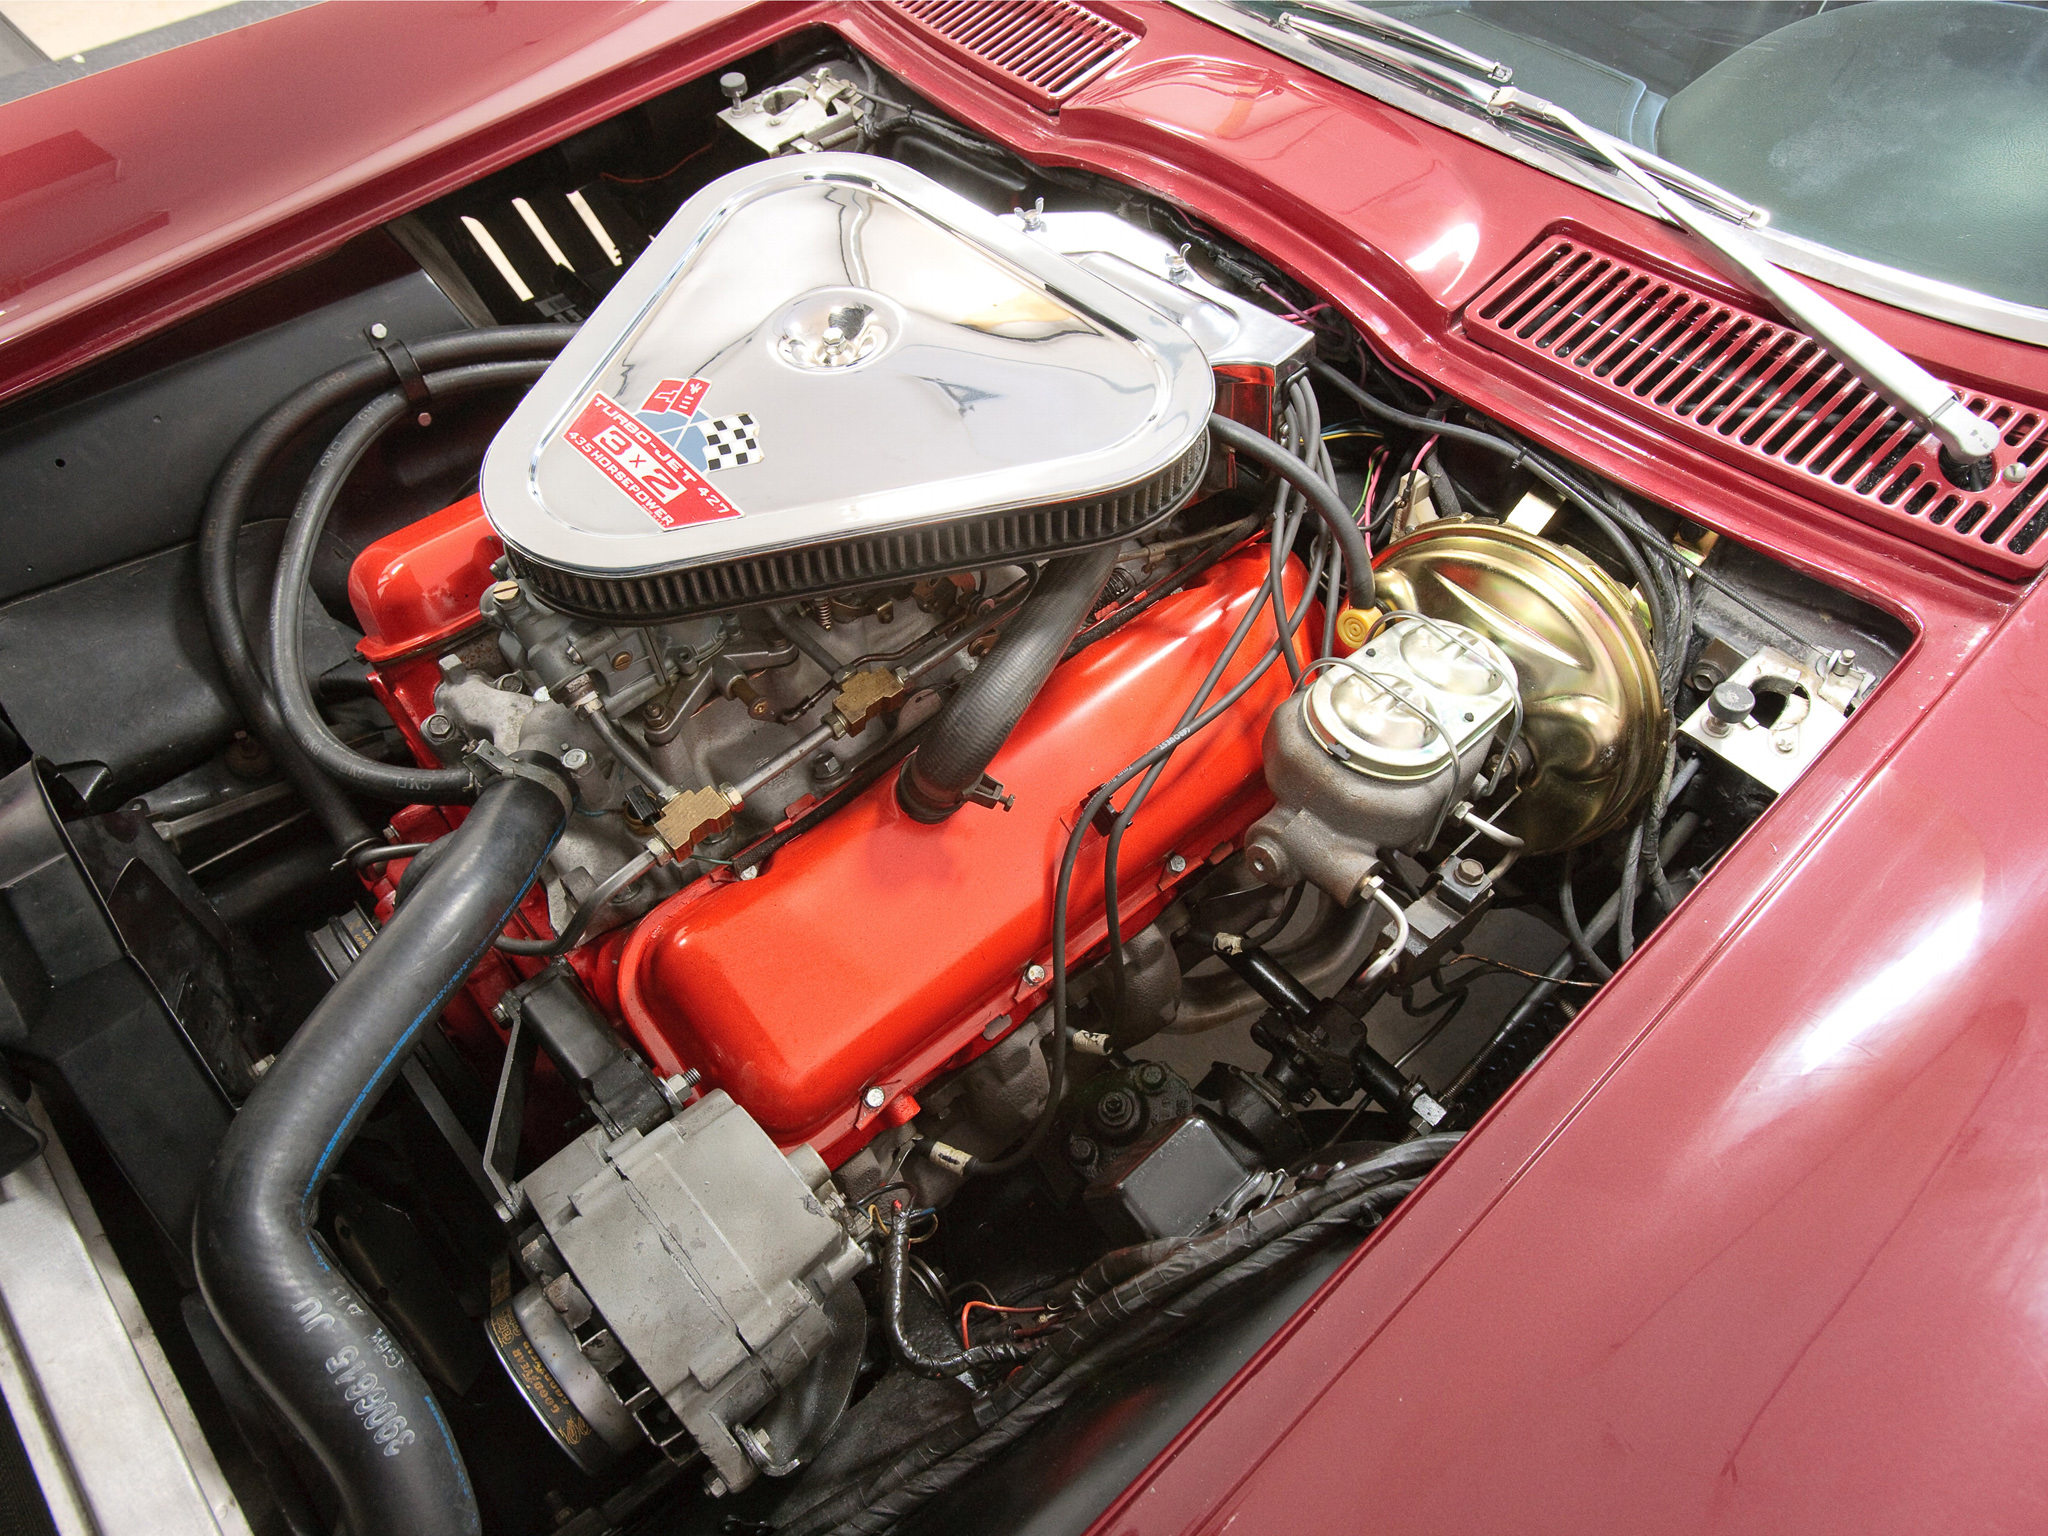 Chevy Muscle Cars >> 1967 Chevrolet Corvette Sting Ray L71 427 Convertible C-2 supercar muscle classic engine f ...